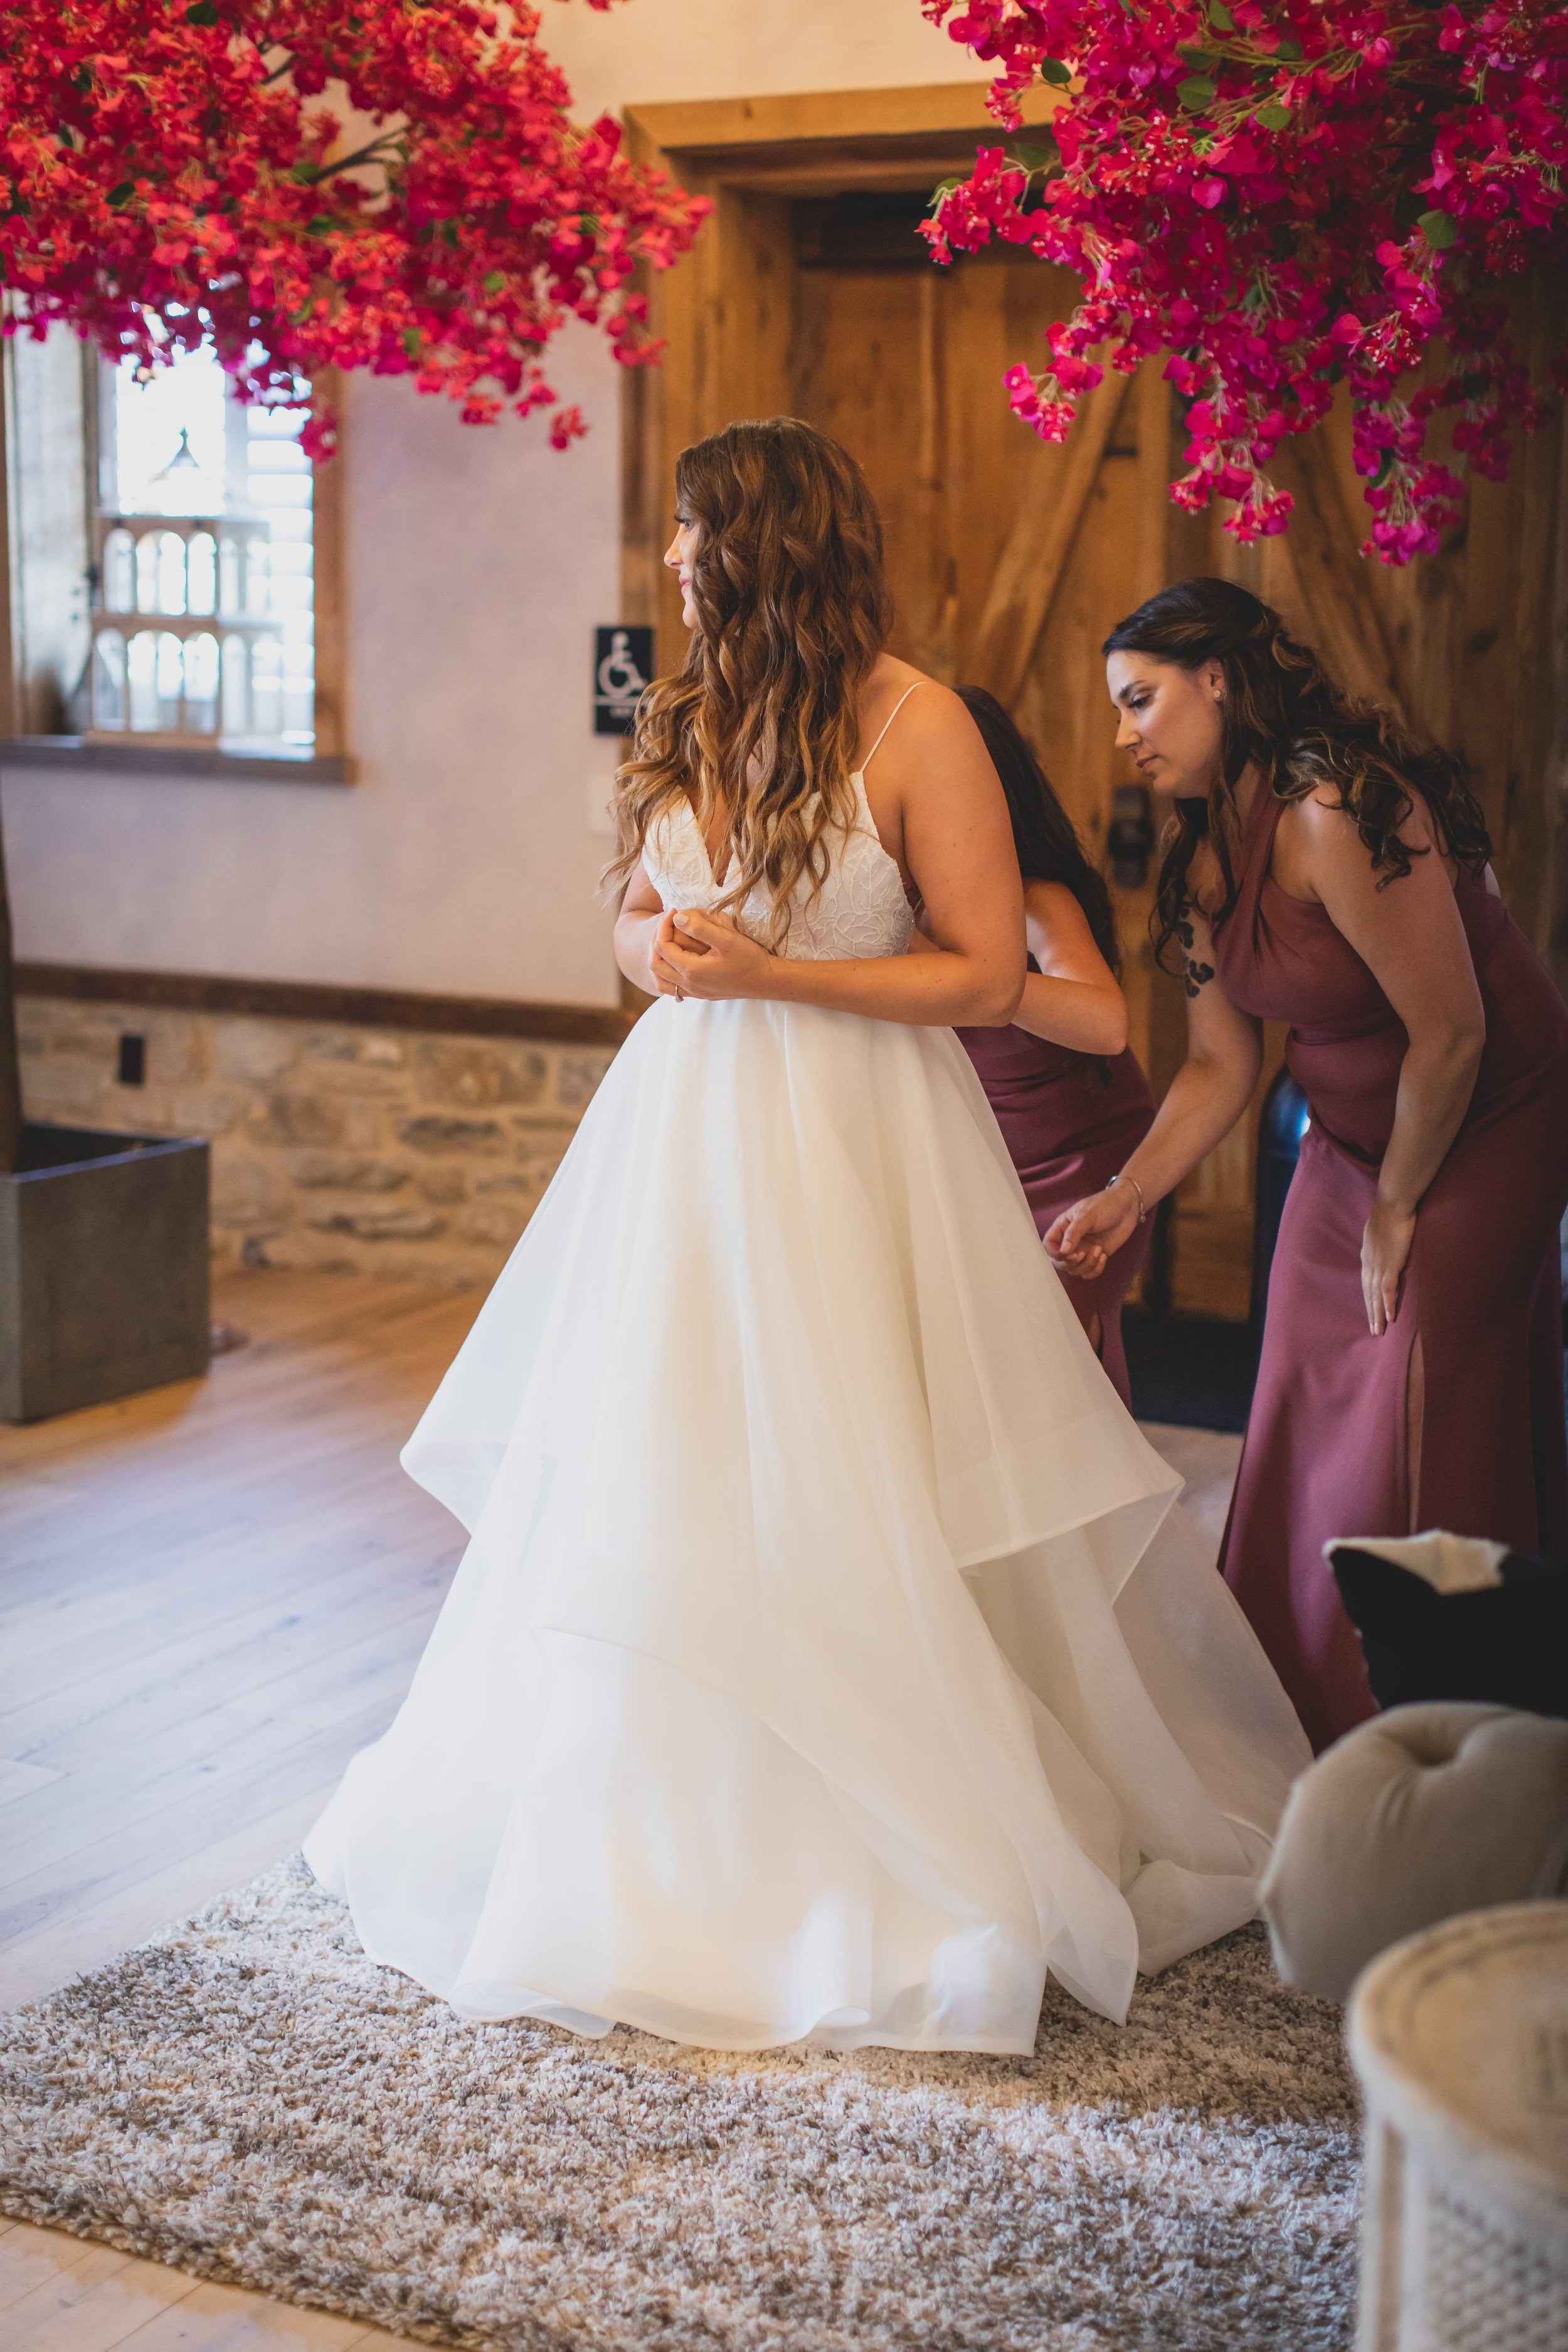 Bride in her bridal suite getting her wedding dress zipped by her bridesmaids.